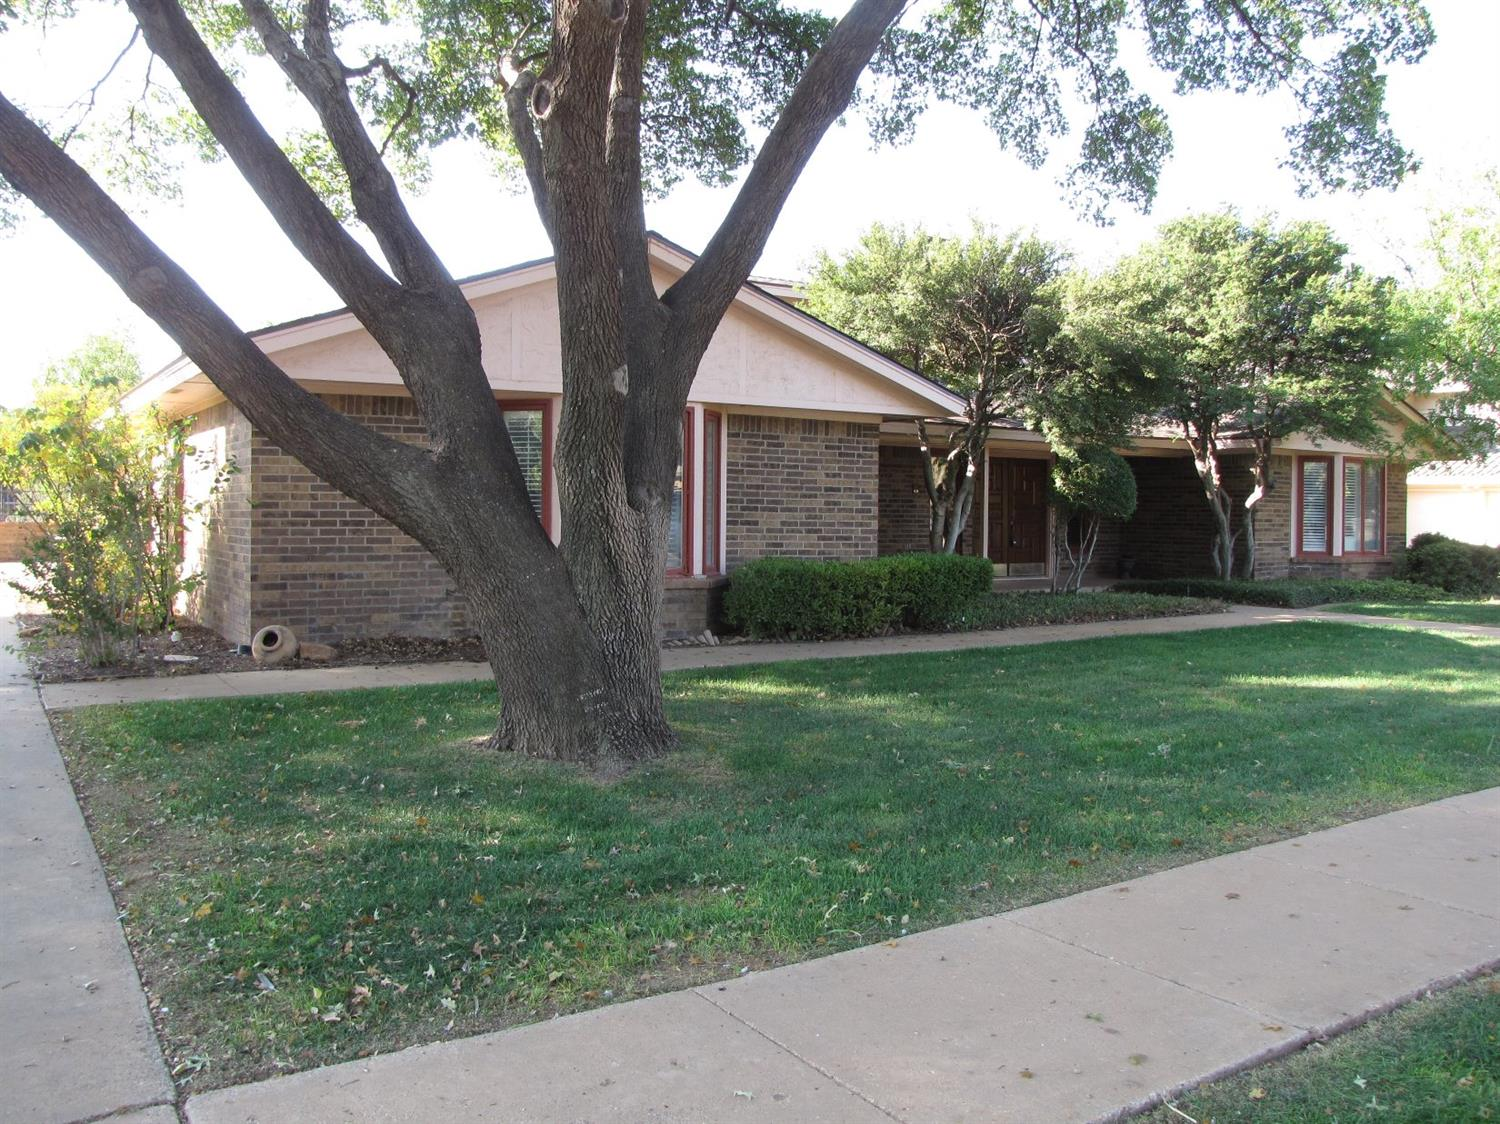 Perfect size, single level home on the golf course.  No HOA, new roof 2018, new water heater 2019, new A/C 2019, new sprinkler 2019, new kitchen appliances, partial renovations (bathrooms/kitchen tile)-4 years old.  Walk to the club.  Low LISD taxes, established, quiet neighborhood, fenced, small backyard (wrought iron and brick), don't miss the New Tub in Master!!  Location, size, and price.  Come take a look.  Thanks.  Club membership optional.